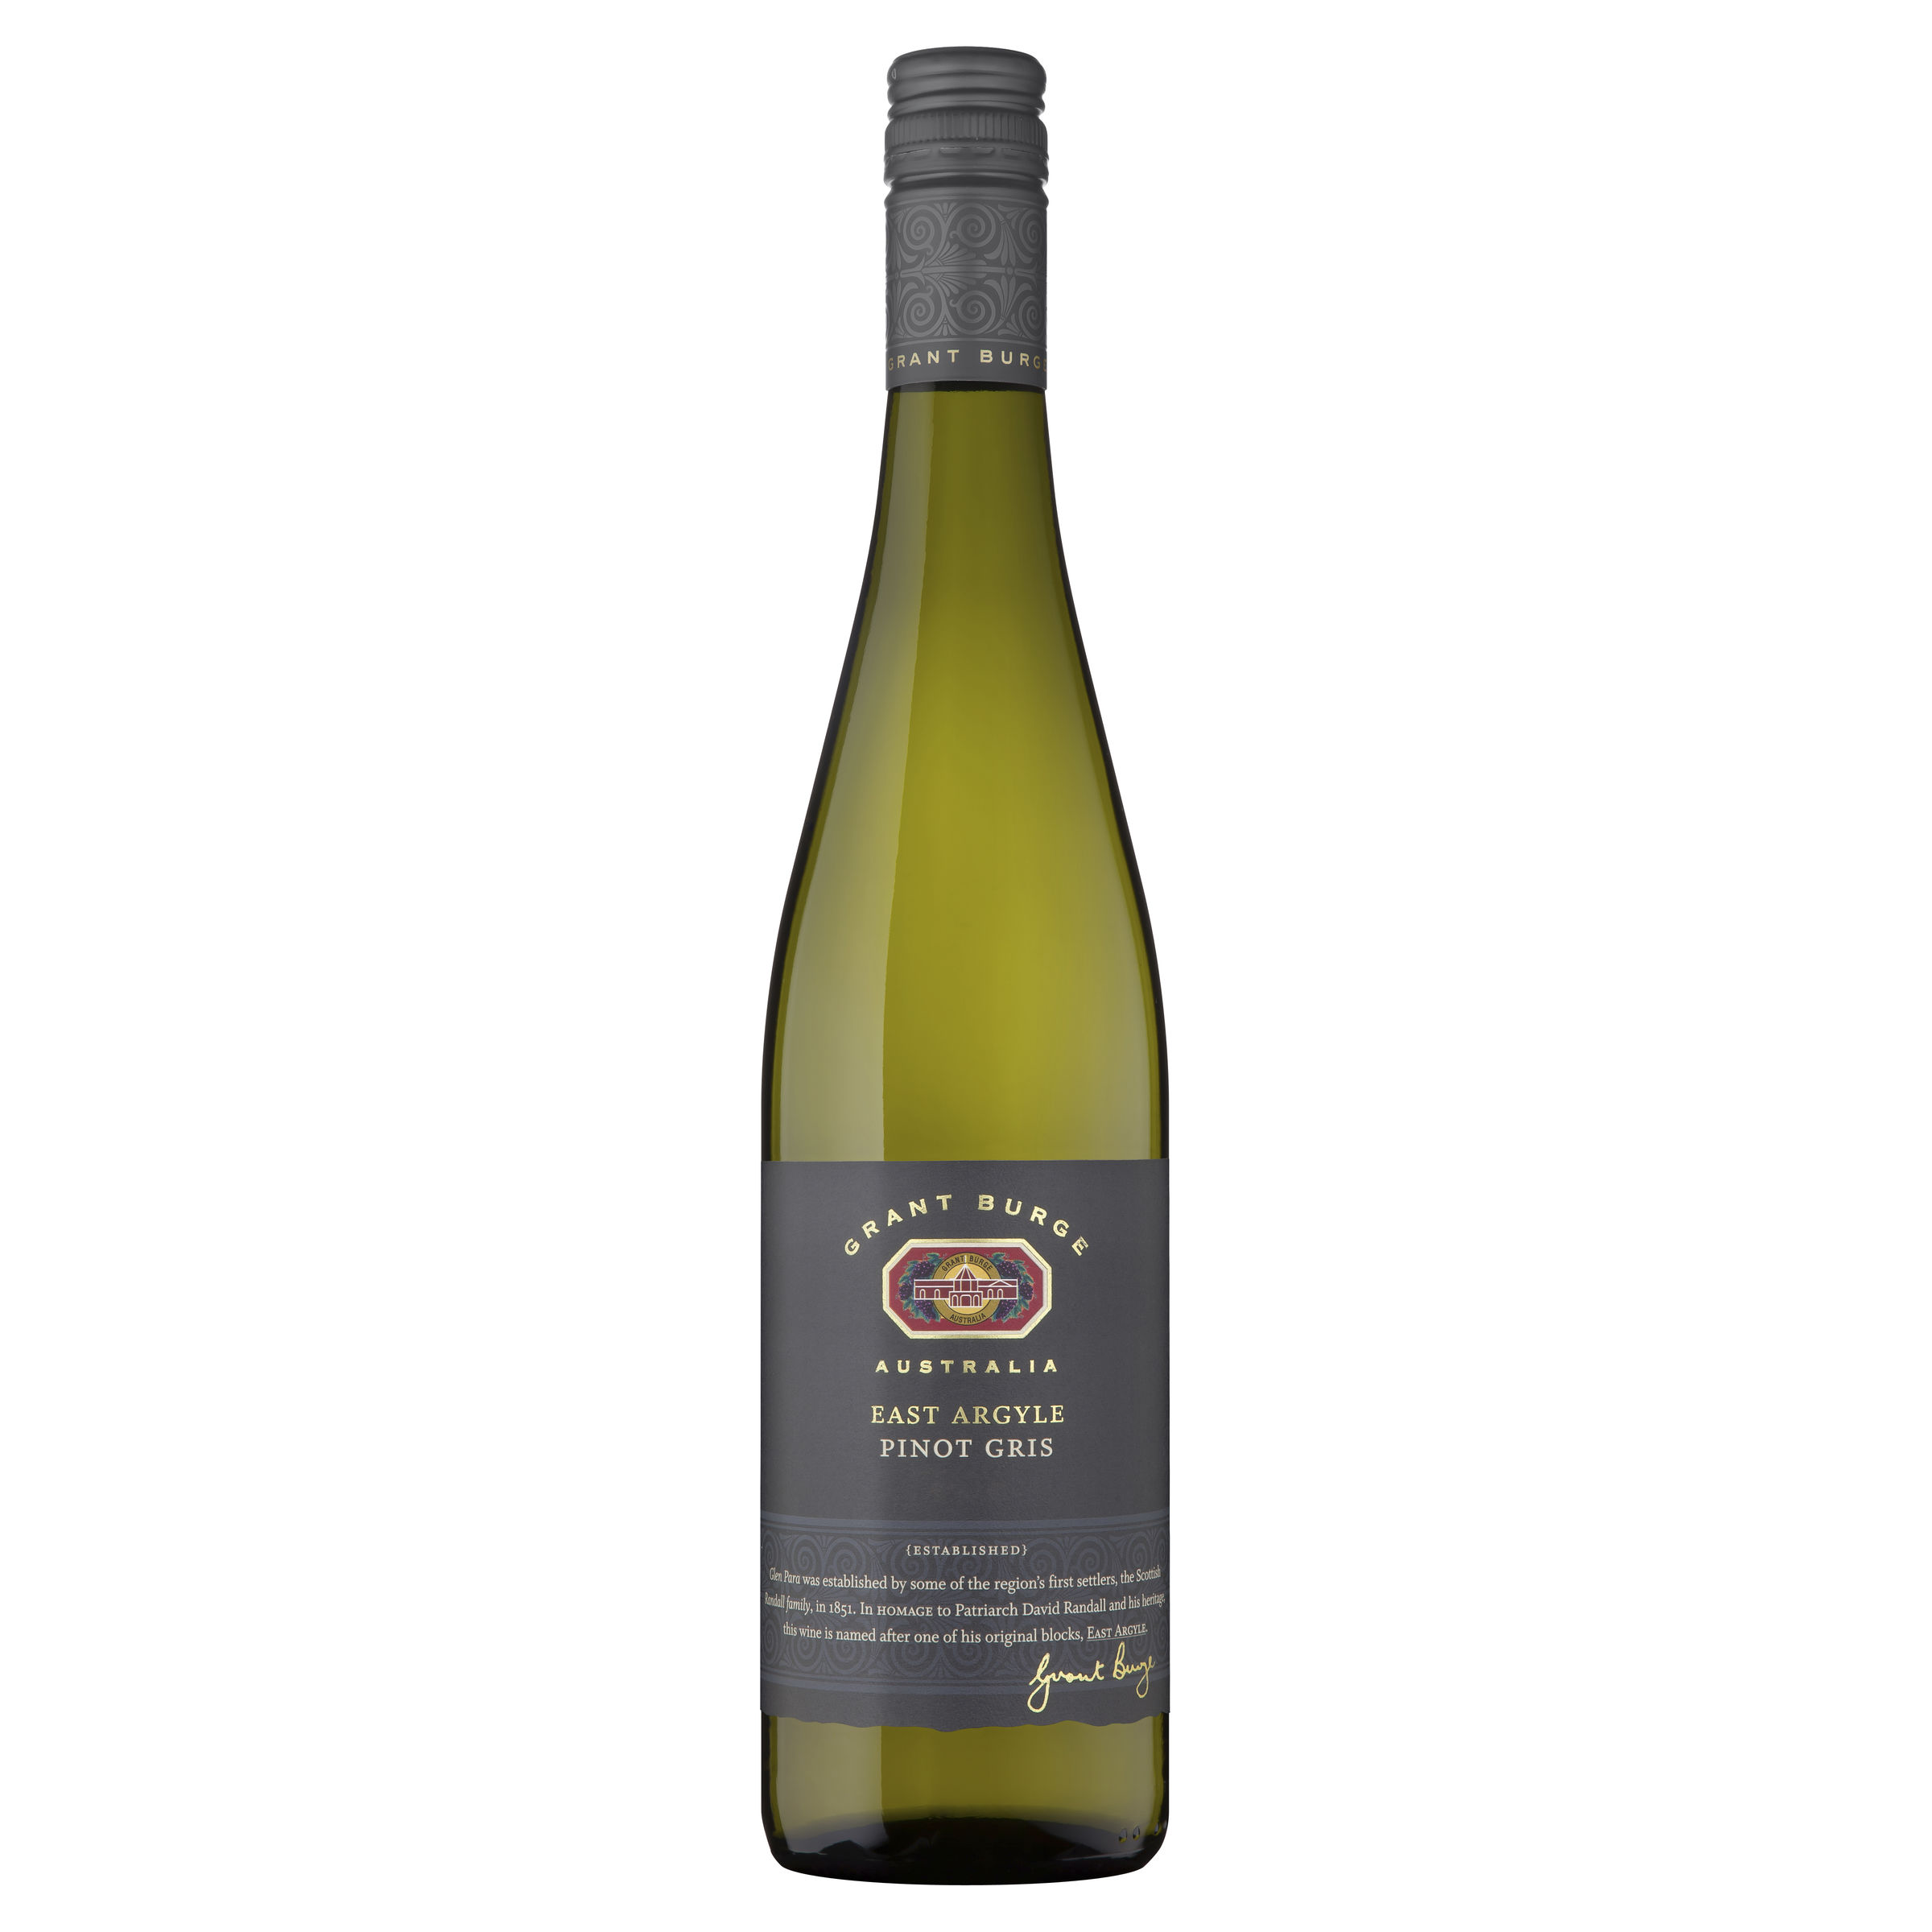 GRANT BURGE EAST ARGYLE PINOT GRIS